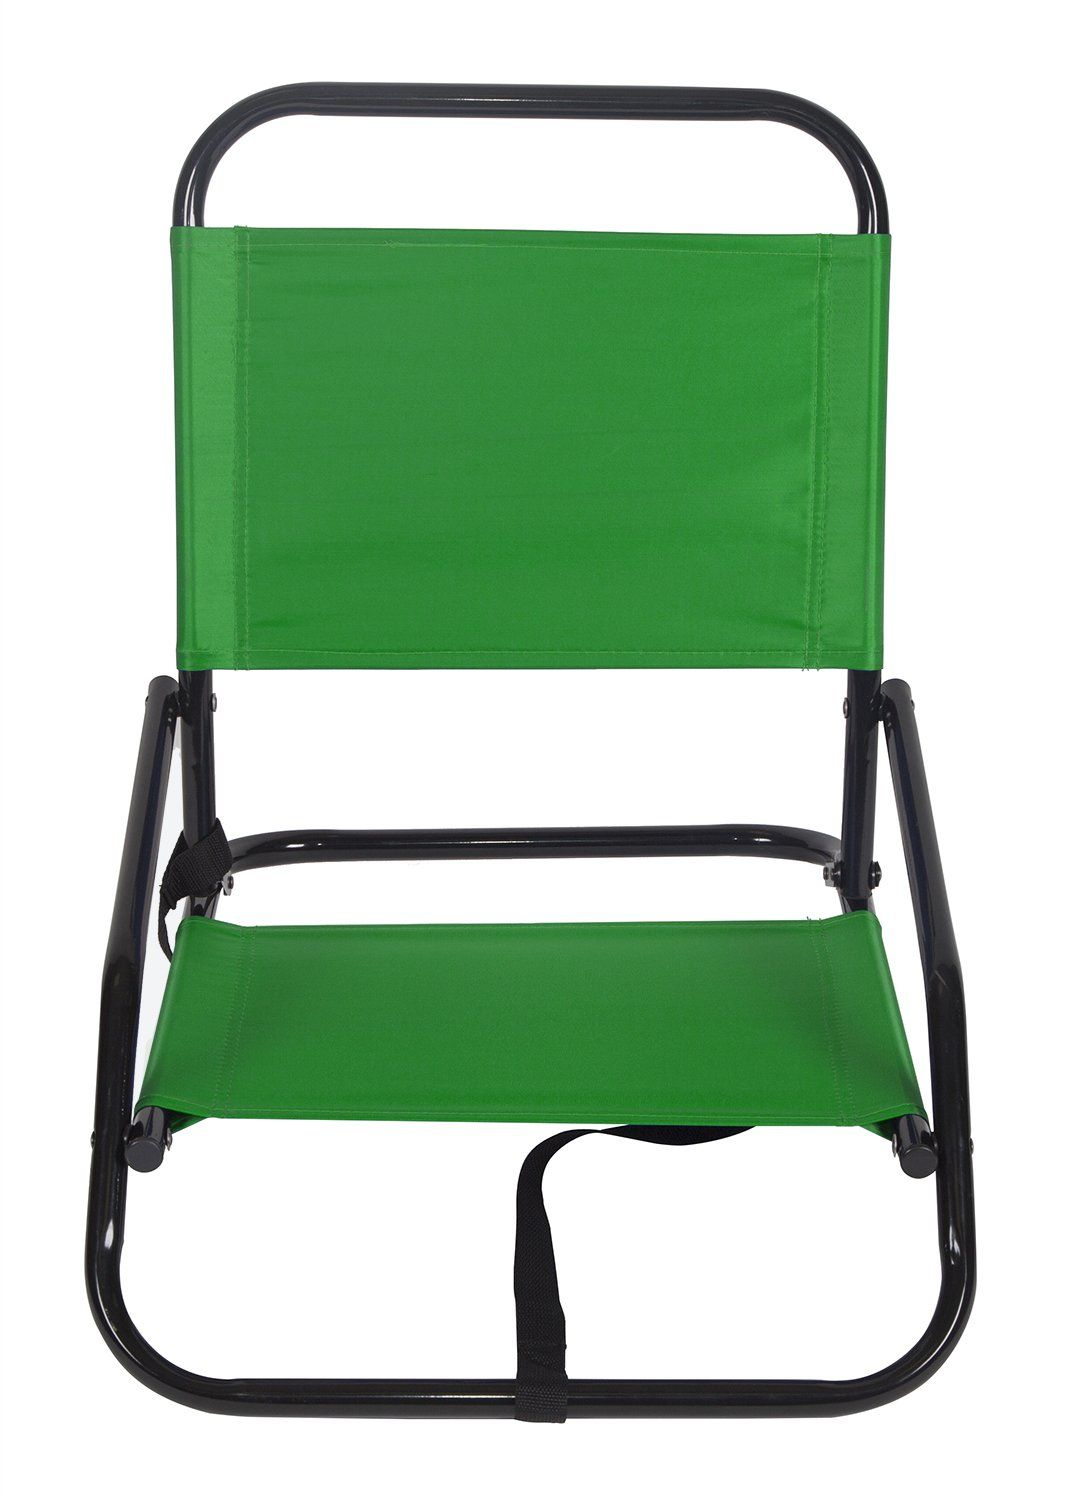 Stansport Sandpiper Sand Chair (Forest Green) Outdoor